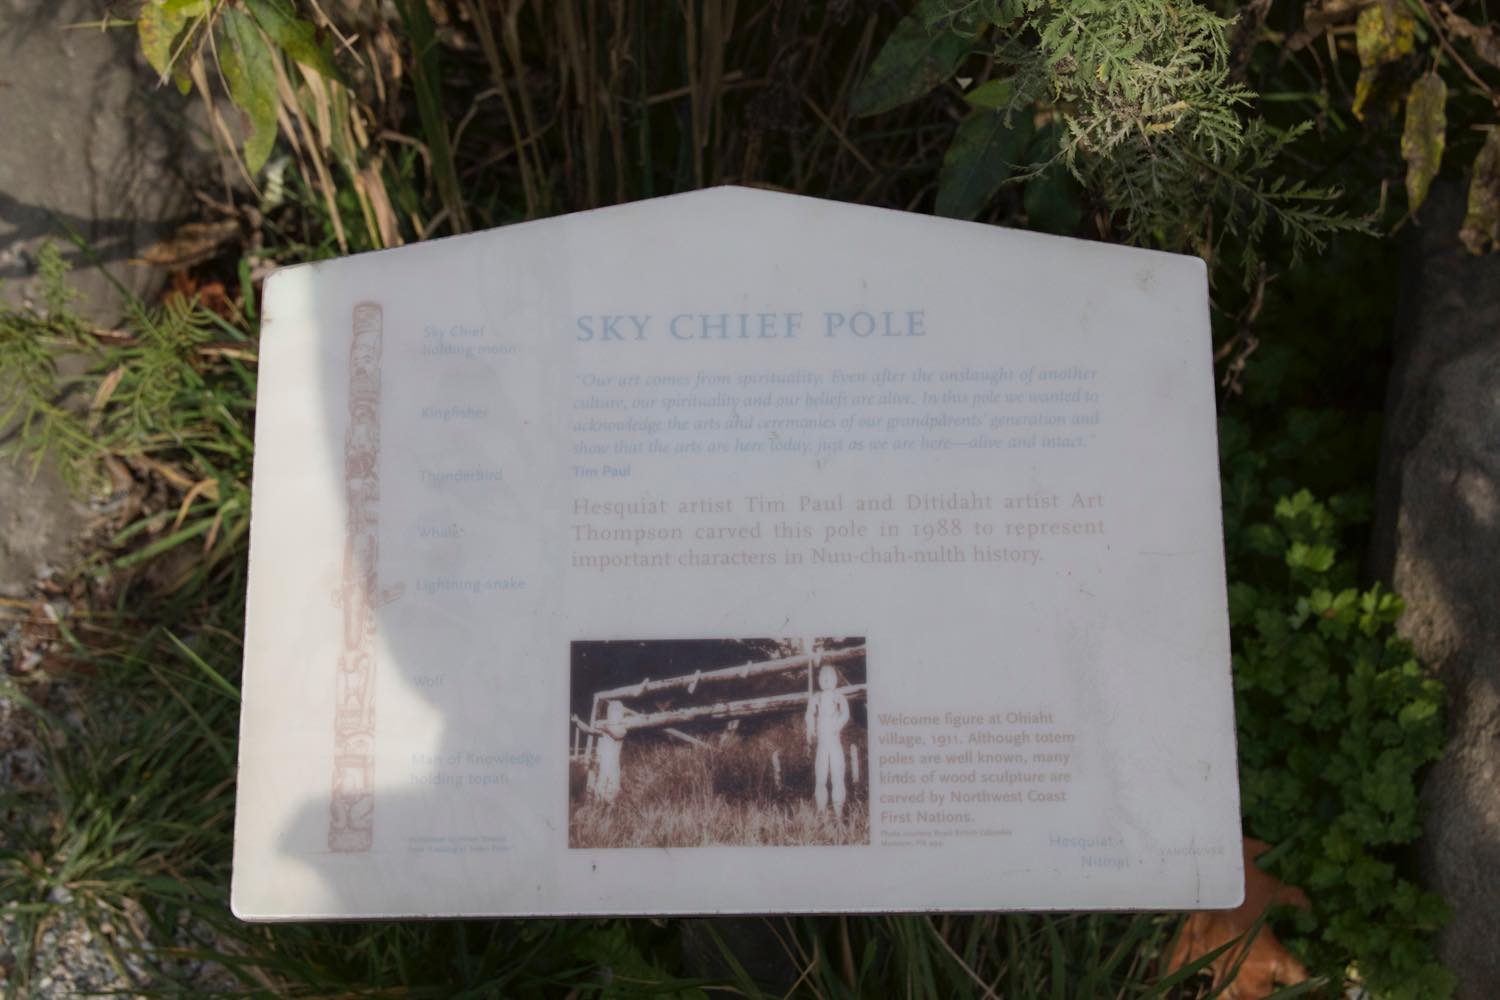 SKY CHIEF POLE